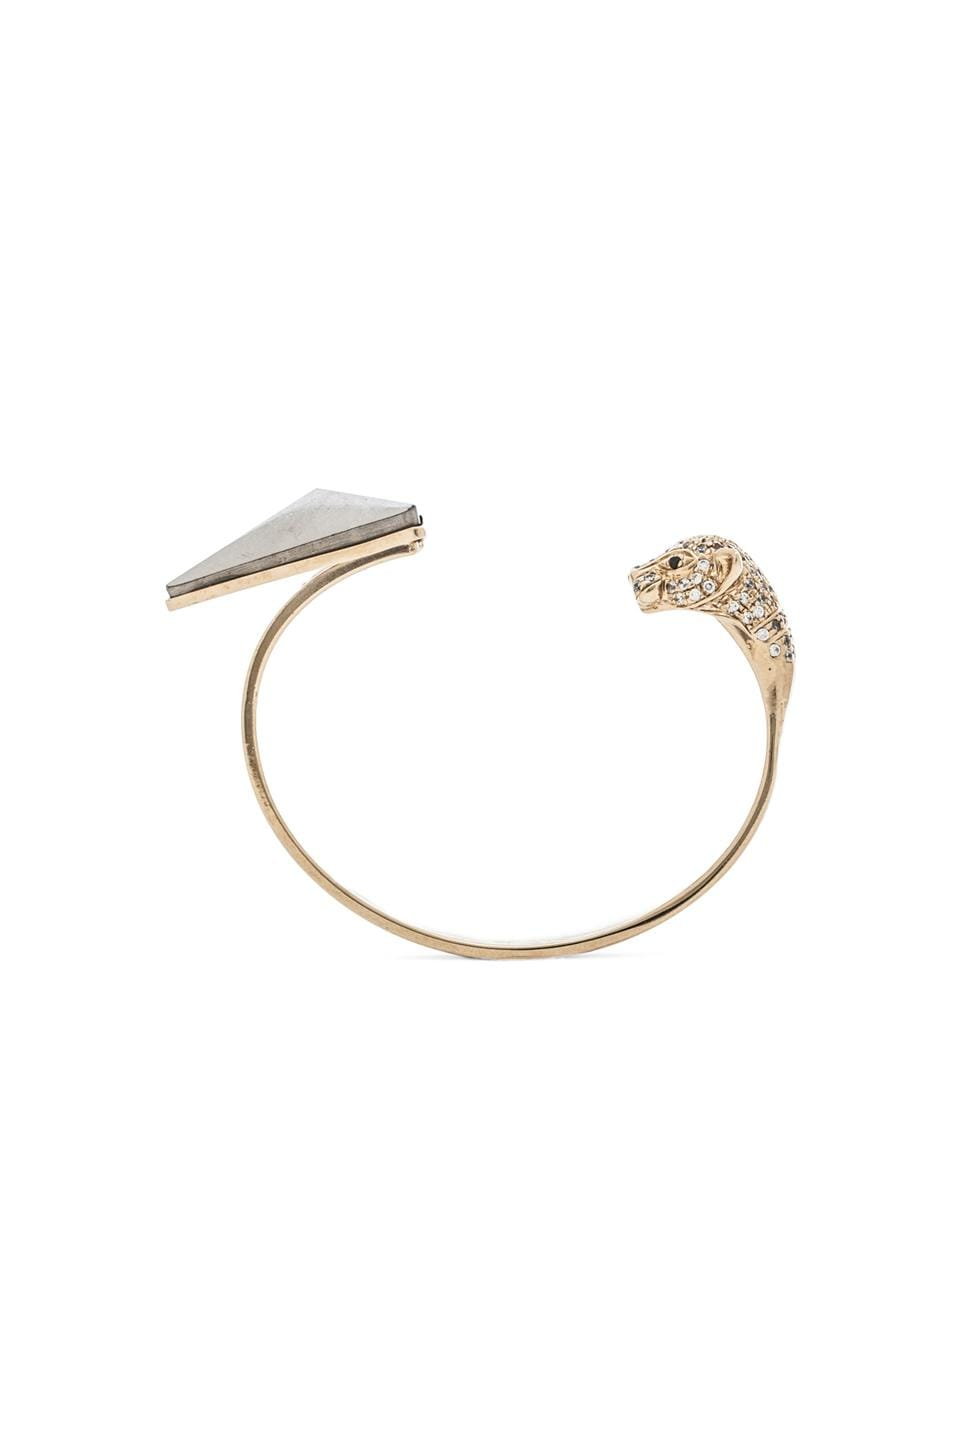 Iosselliani Cuff in Gold